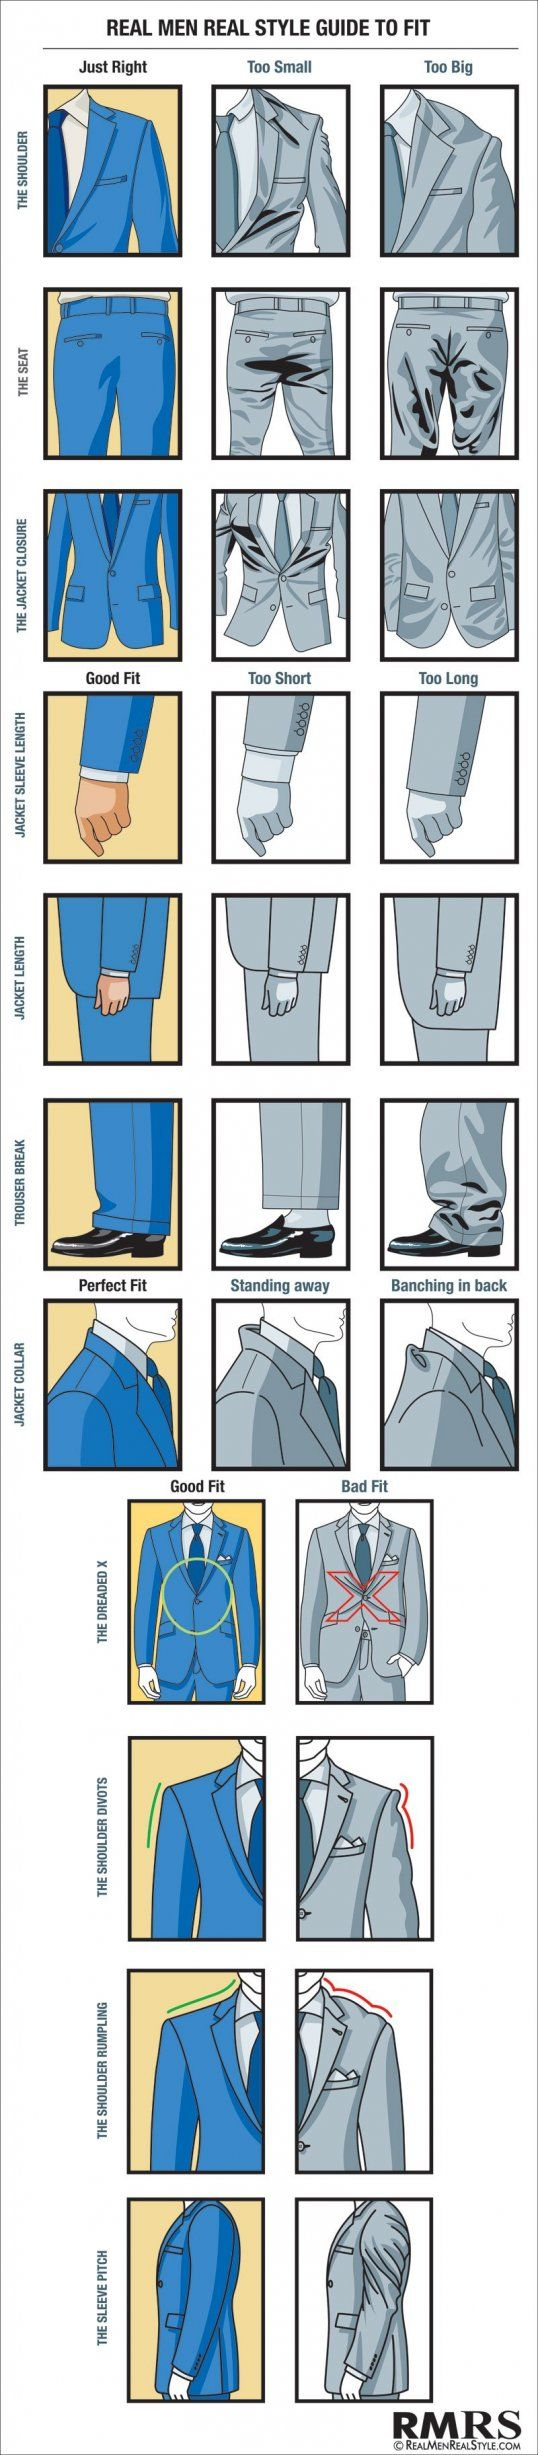 How to choose a suit for an interview